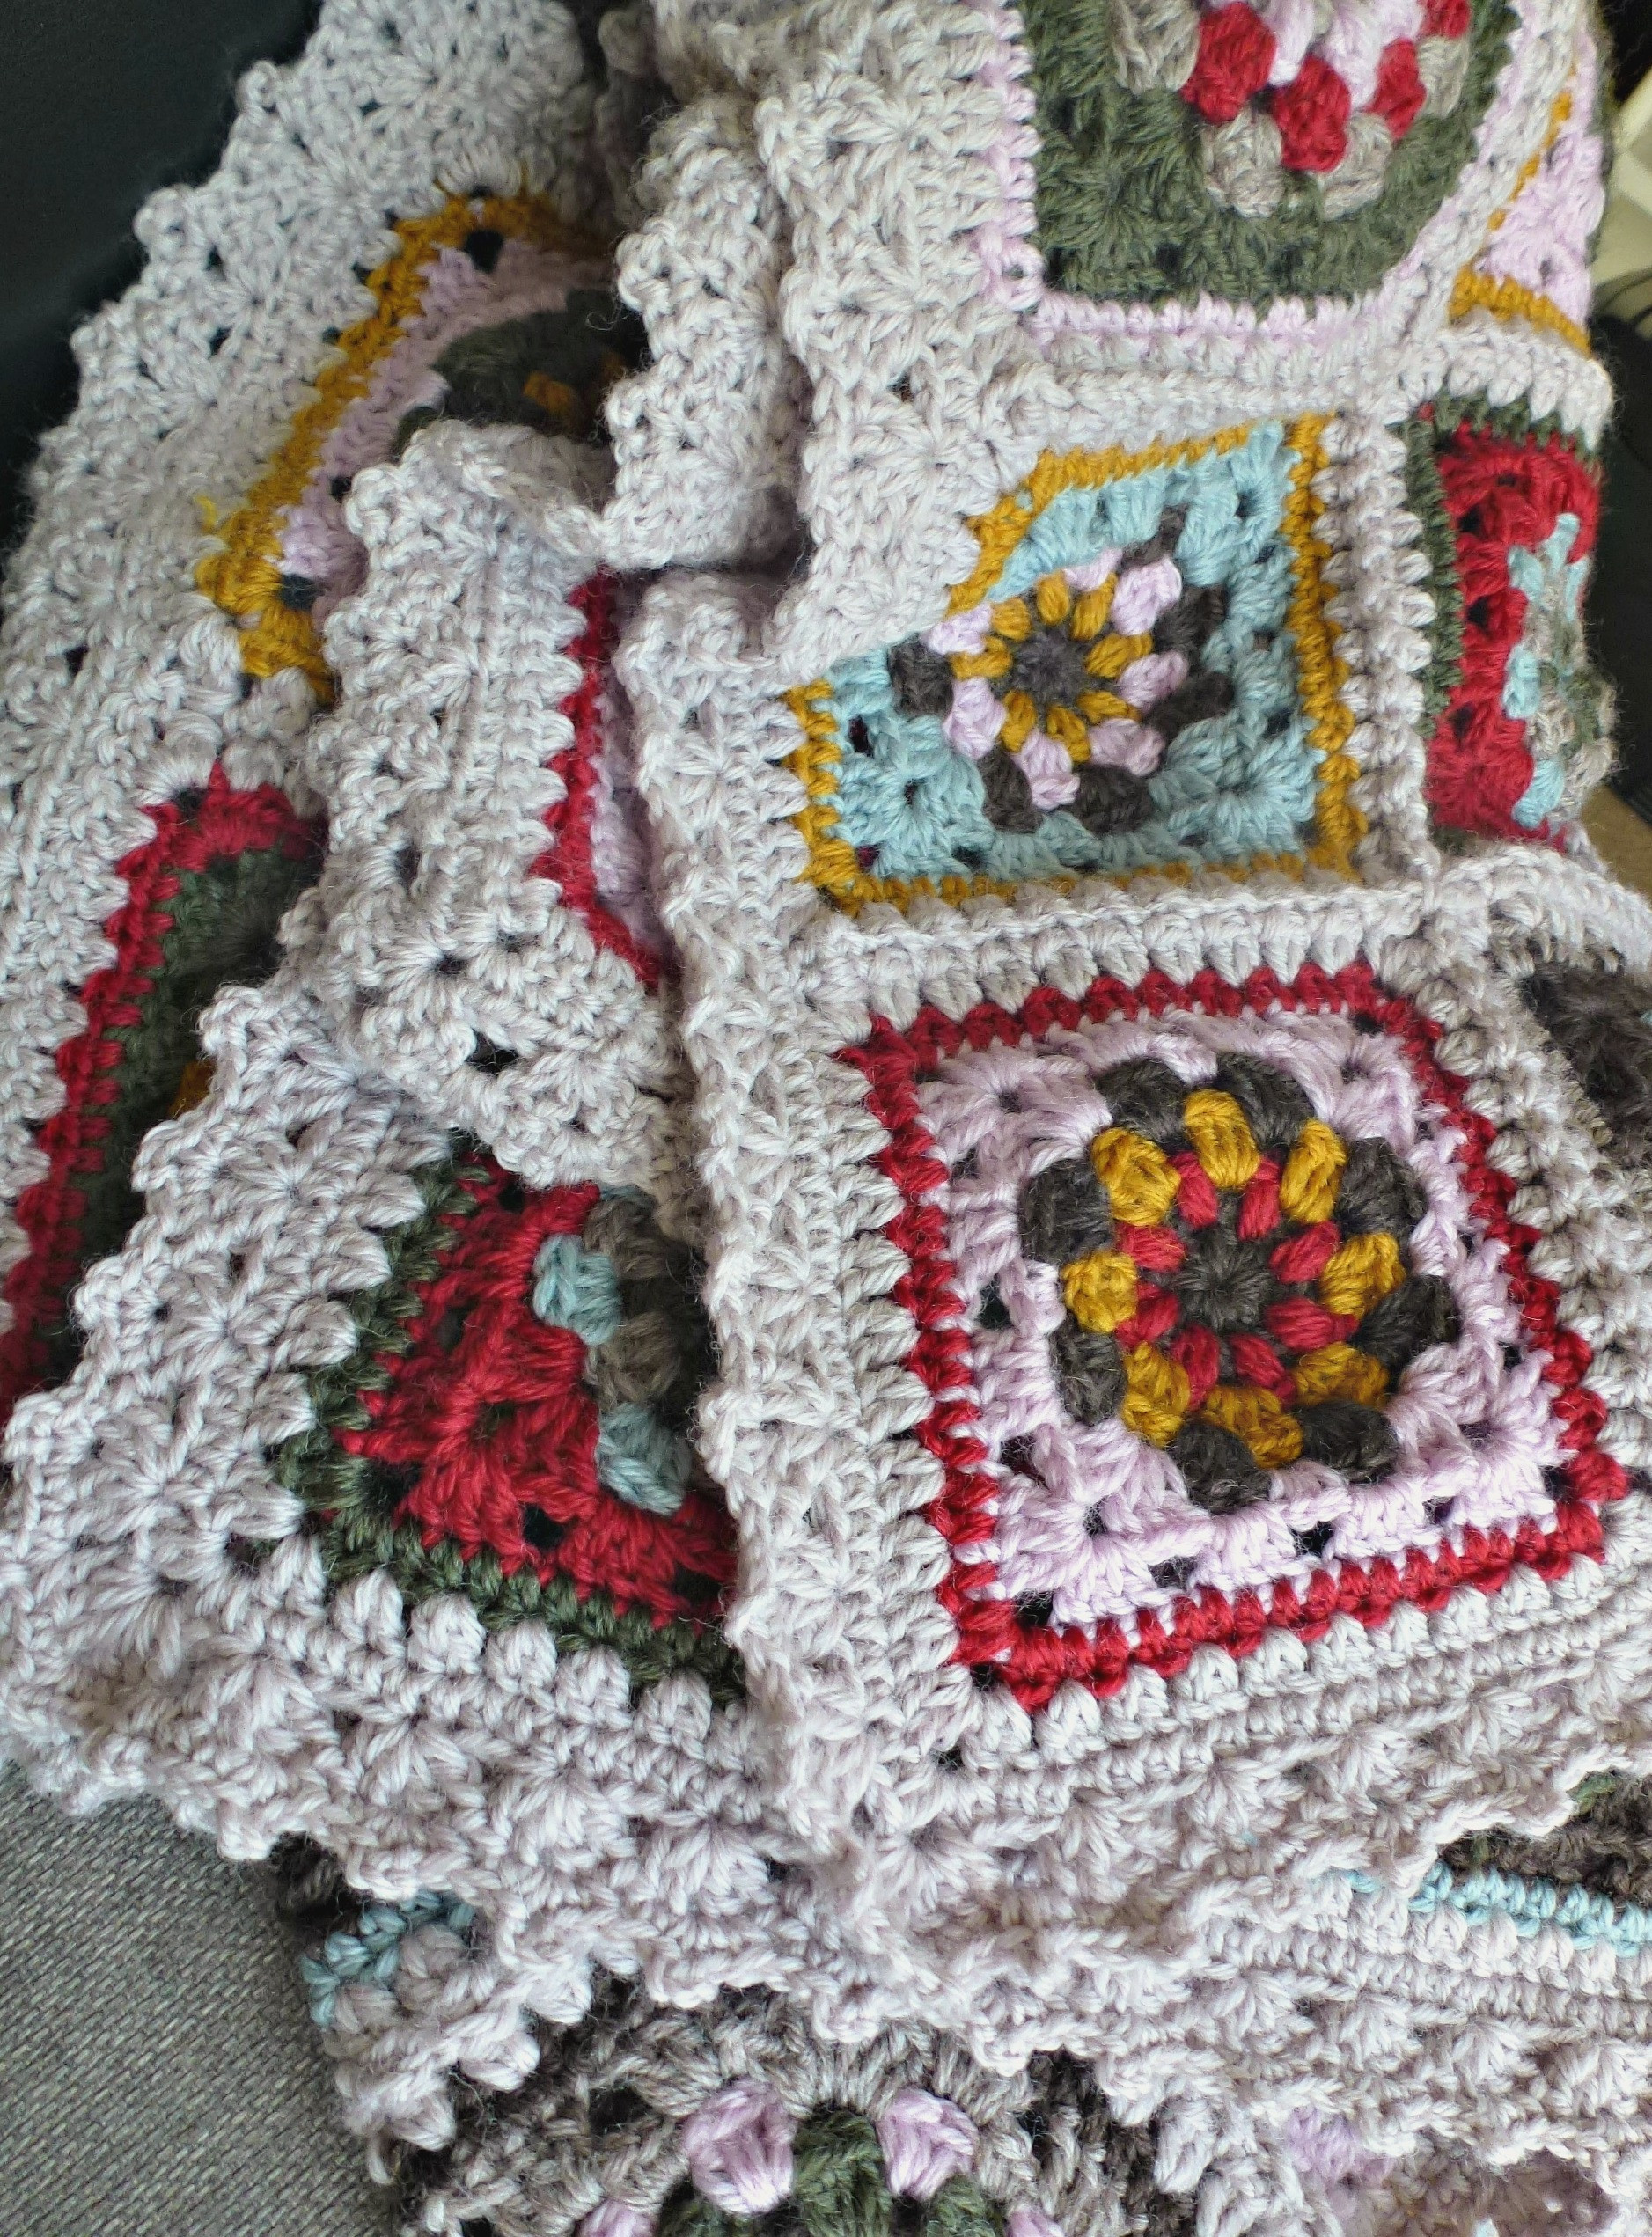 Crochet Granny Blanket Beautiful Lily's Lilypad Fireplace Blanket – Zeens and Roger Of Amazing 47 Ideas Crochet Granny Blanket